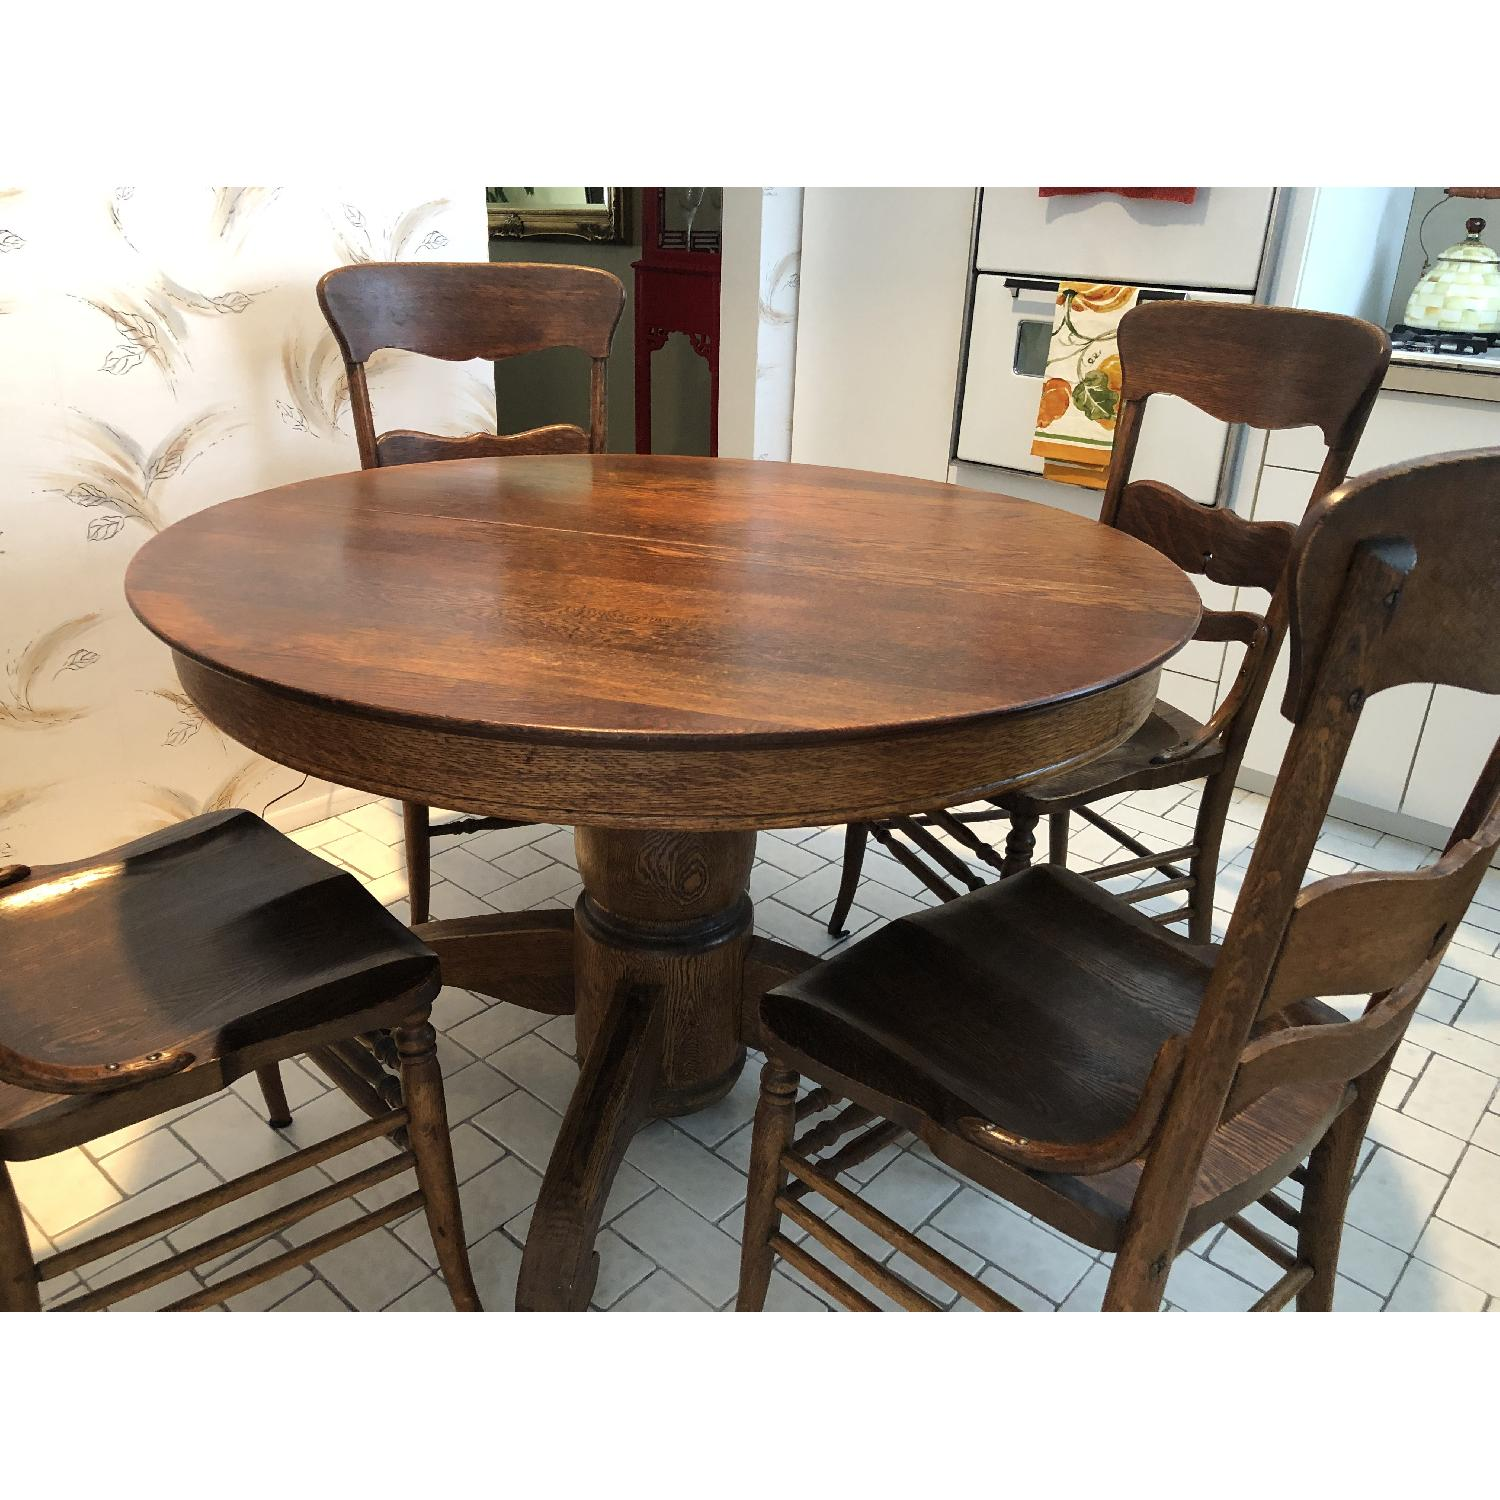 Vintage Round Wood Dining Table w/ 6 Chairs - image-4